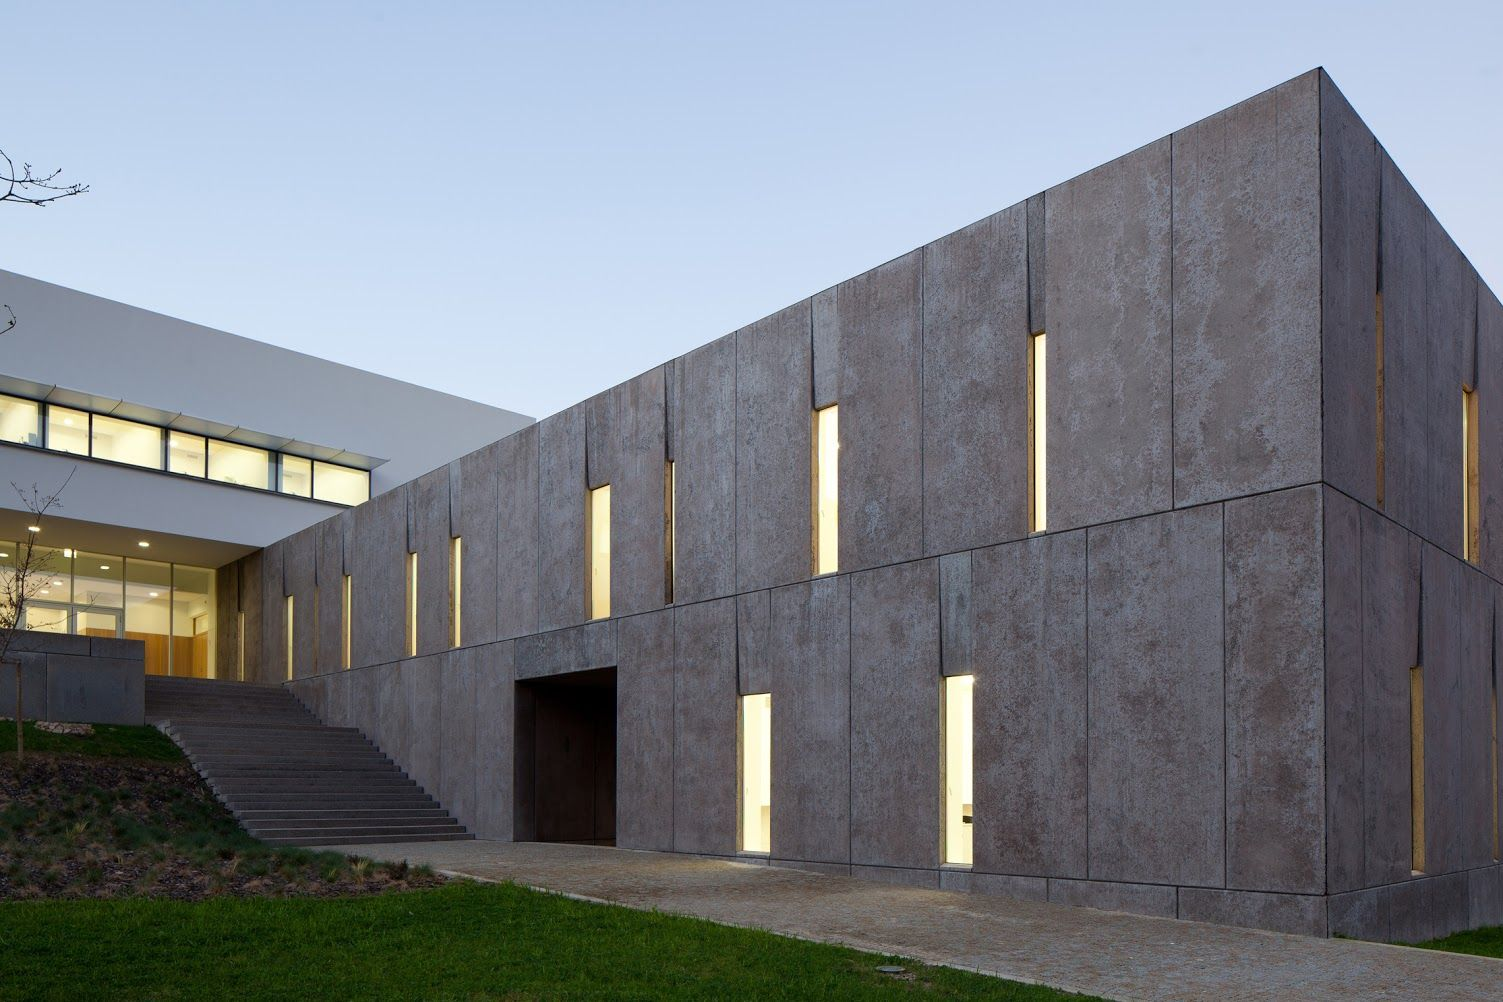 The new Melgaço Sports School